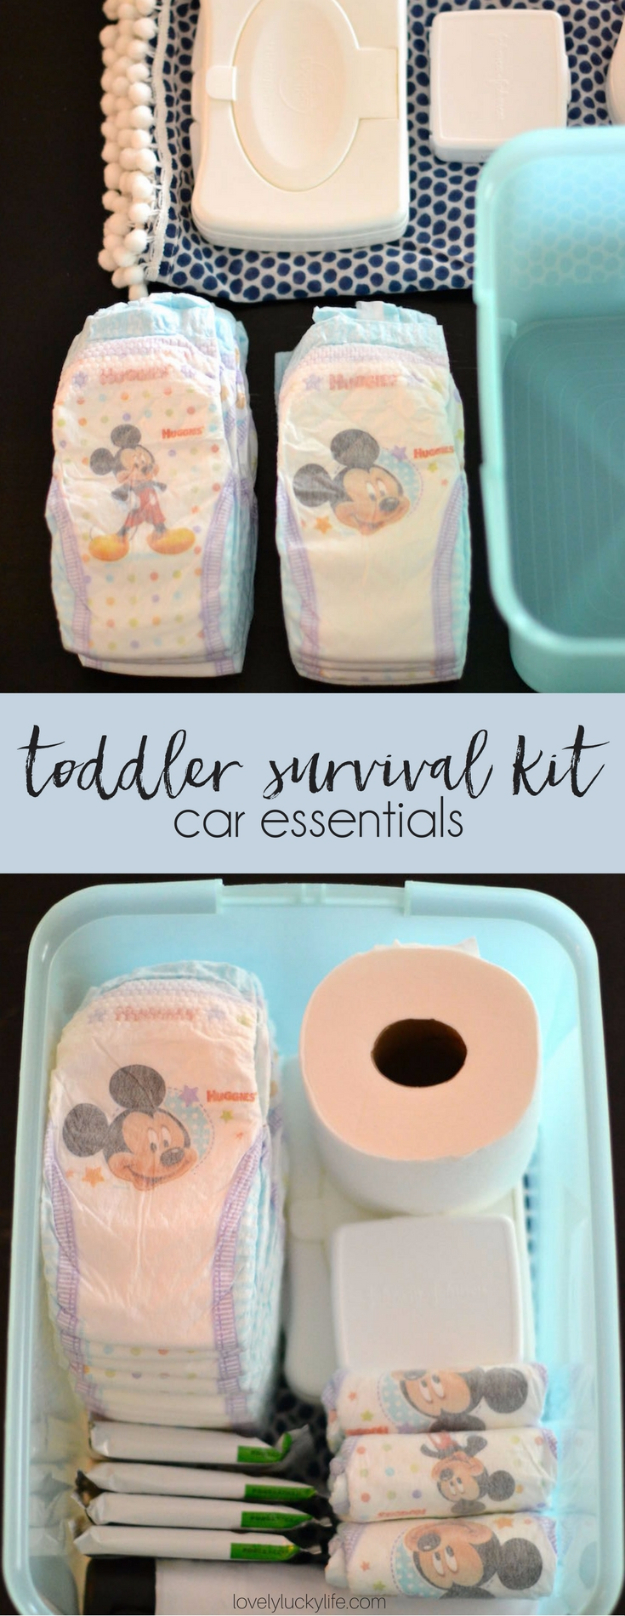 DIY Car Accessories and Ideas for Cars - Toddler Survival Kit Car Essentials - Interior and Exterior, Seats, Mirror, Seat Covers, Storage, Carpet and Window Cleaners and Products - Decor, Keys and Iphone and Tablet Holders - DIY Projects and Crafts for Women and Men